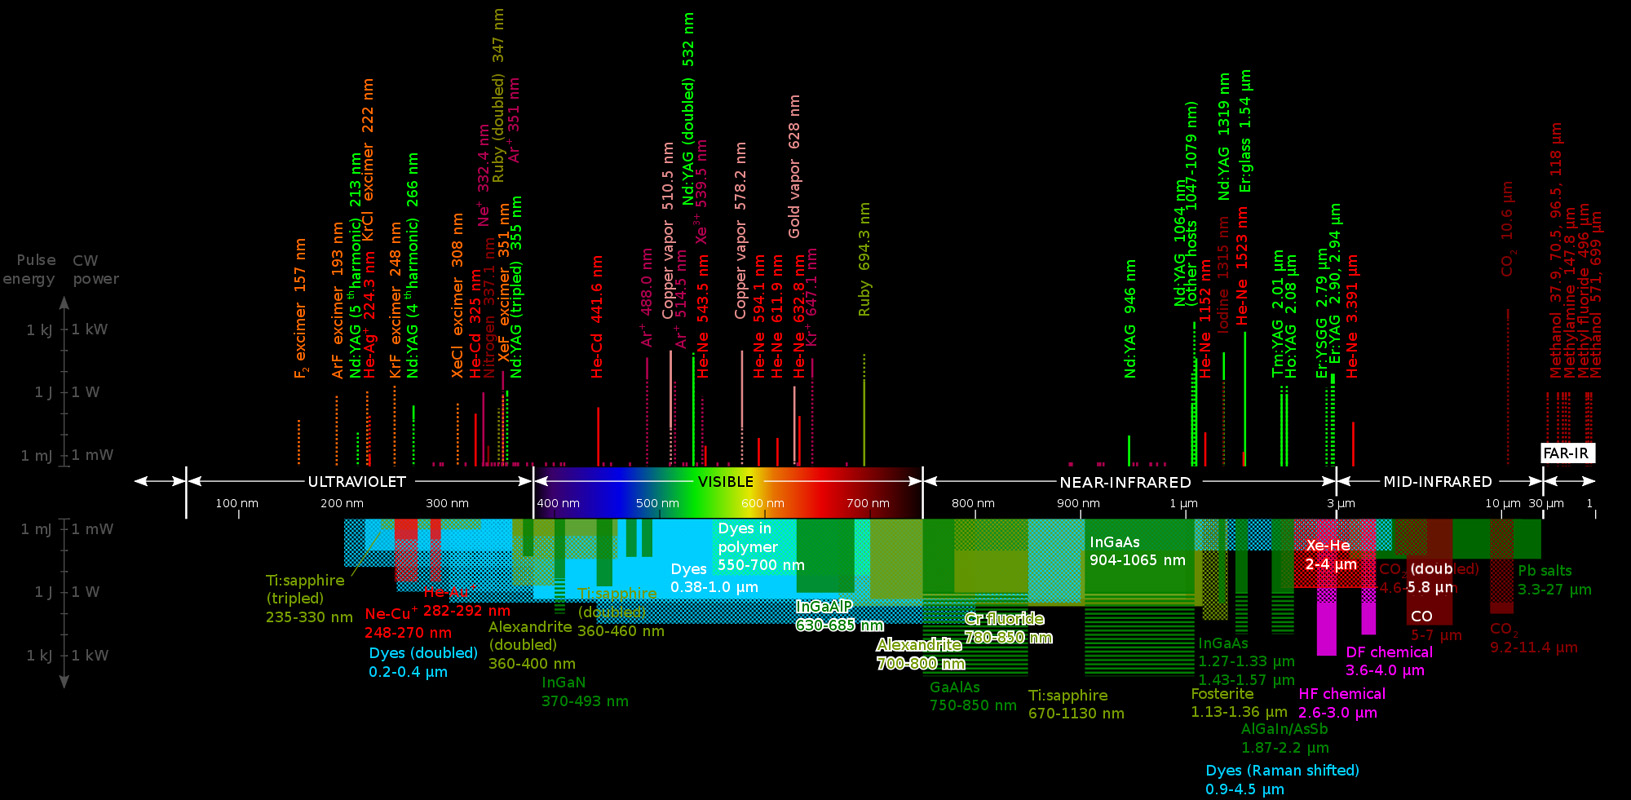 hight resolution of use horizontal scroll bar to pan the spectrum right and left